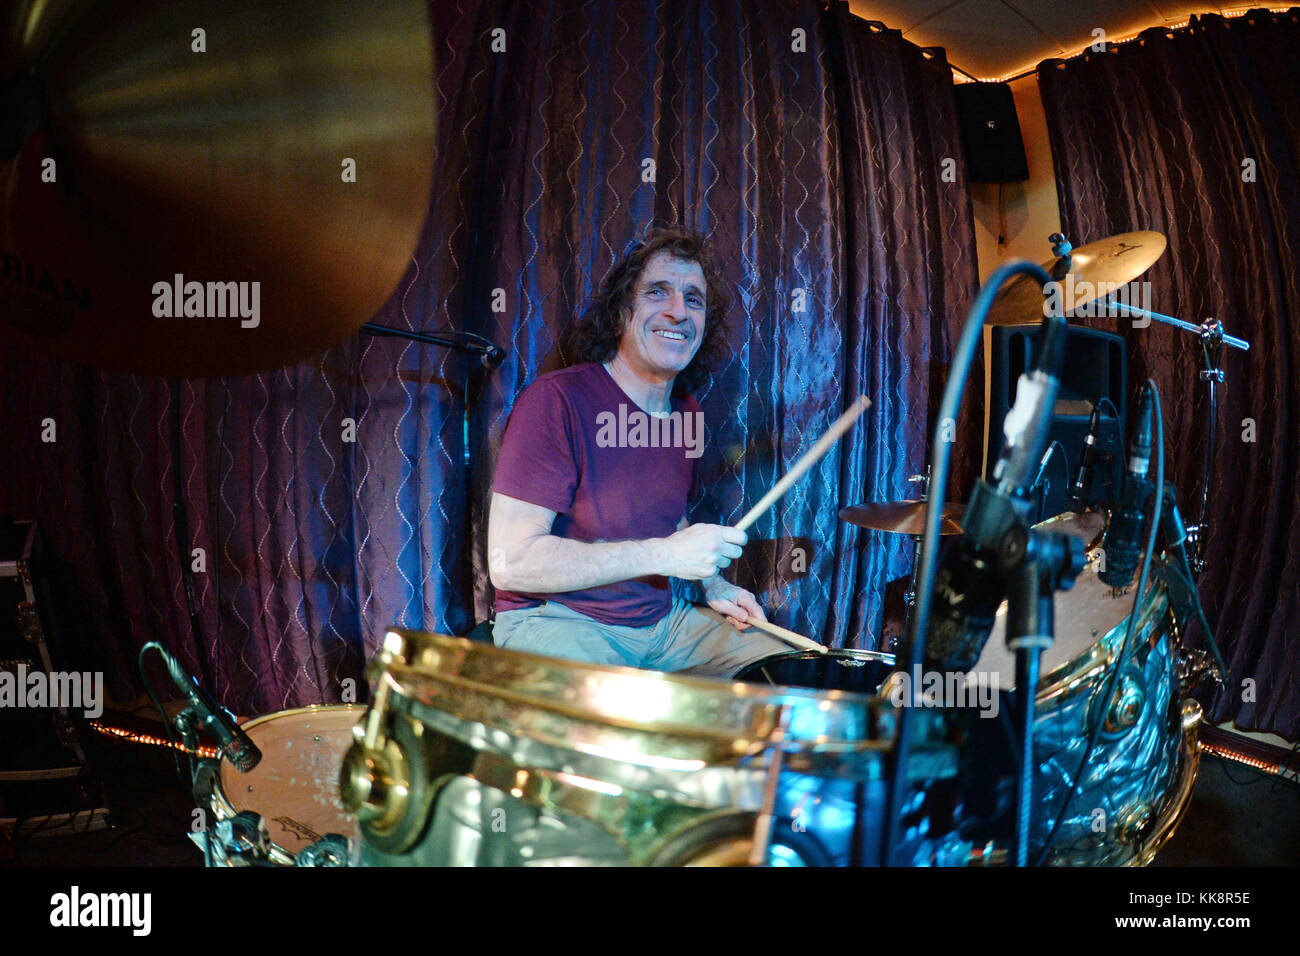 FORT LAUDERDALE, FL - JANUARY 15: Corky Laing performs during his Birthday Party Jam with friends including Joe - Stock Image